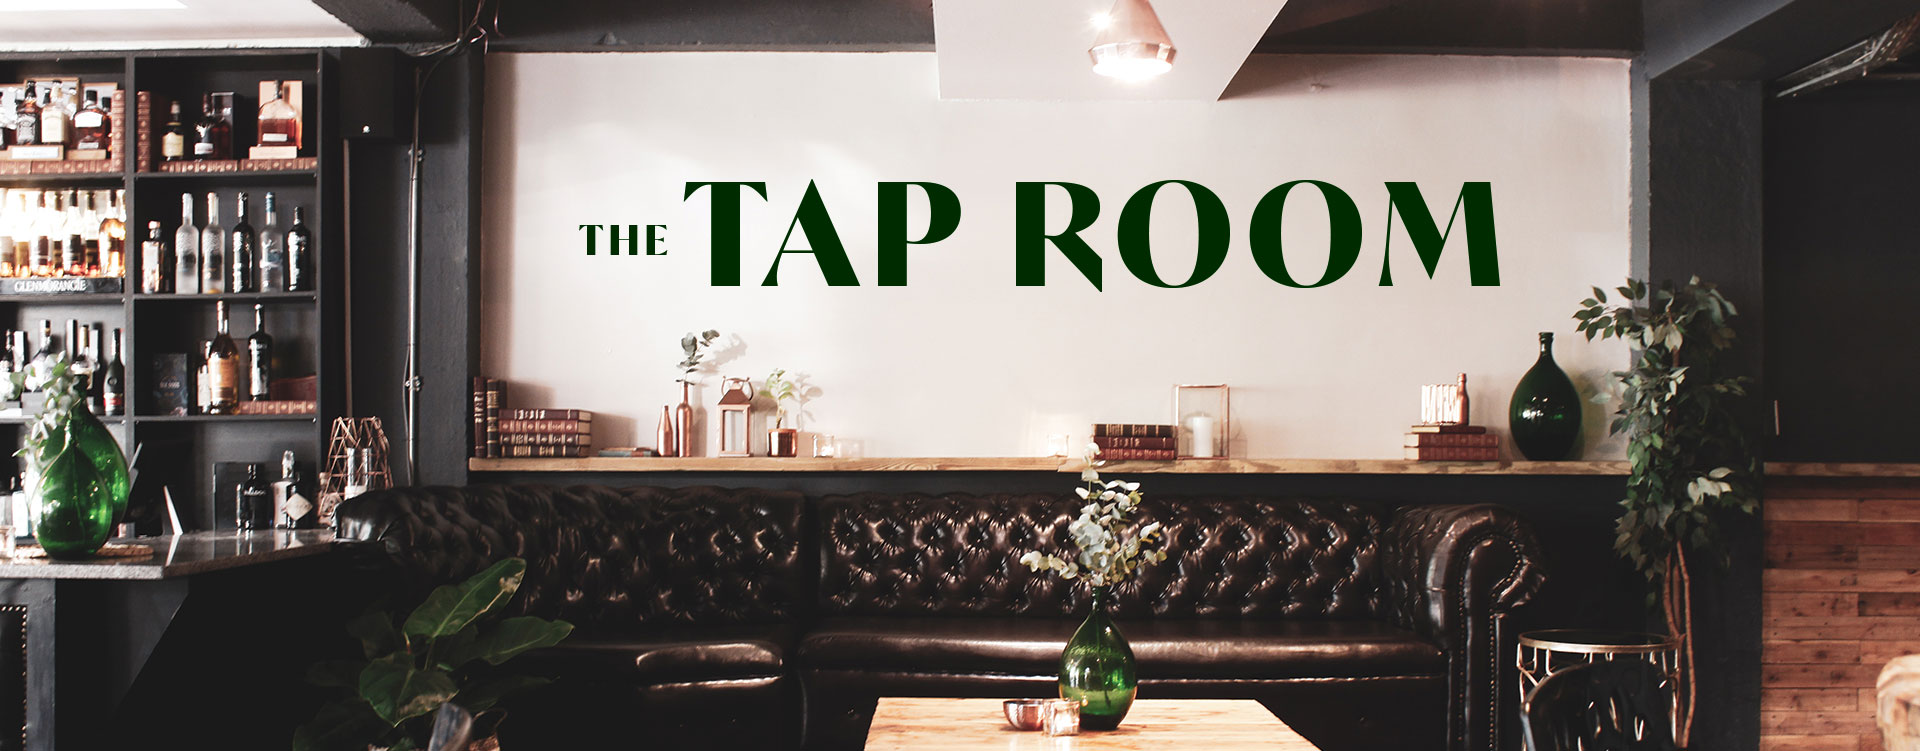 Bridge Street Brewery Tap Room Venue Hire